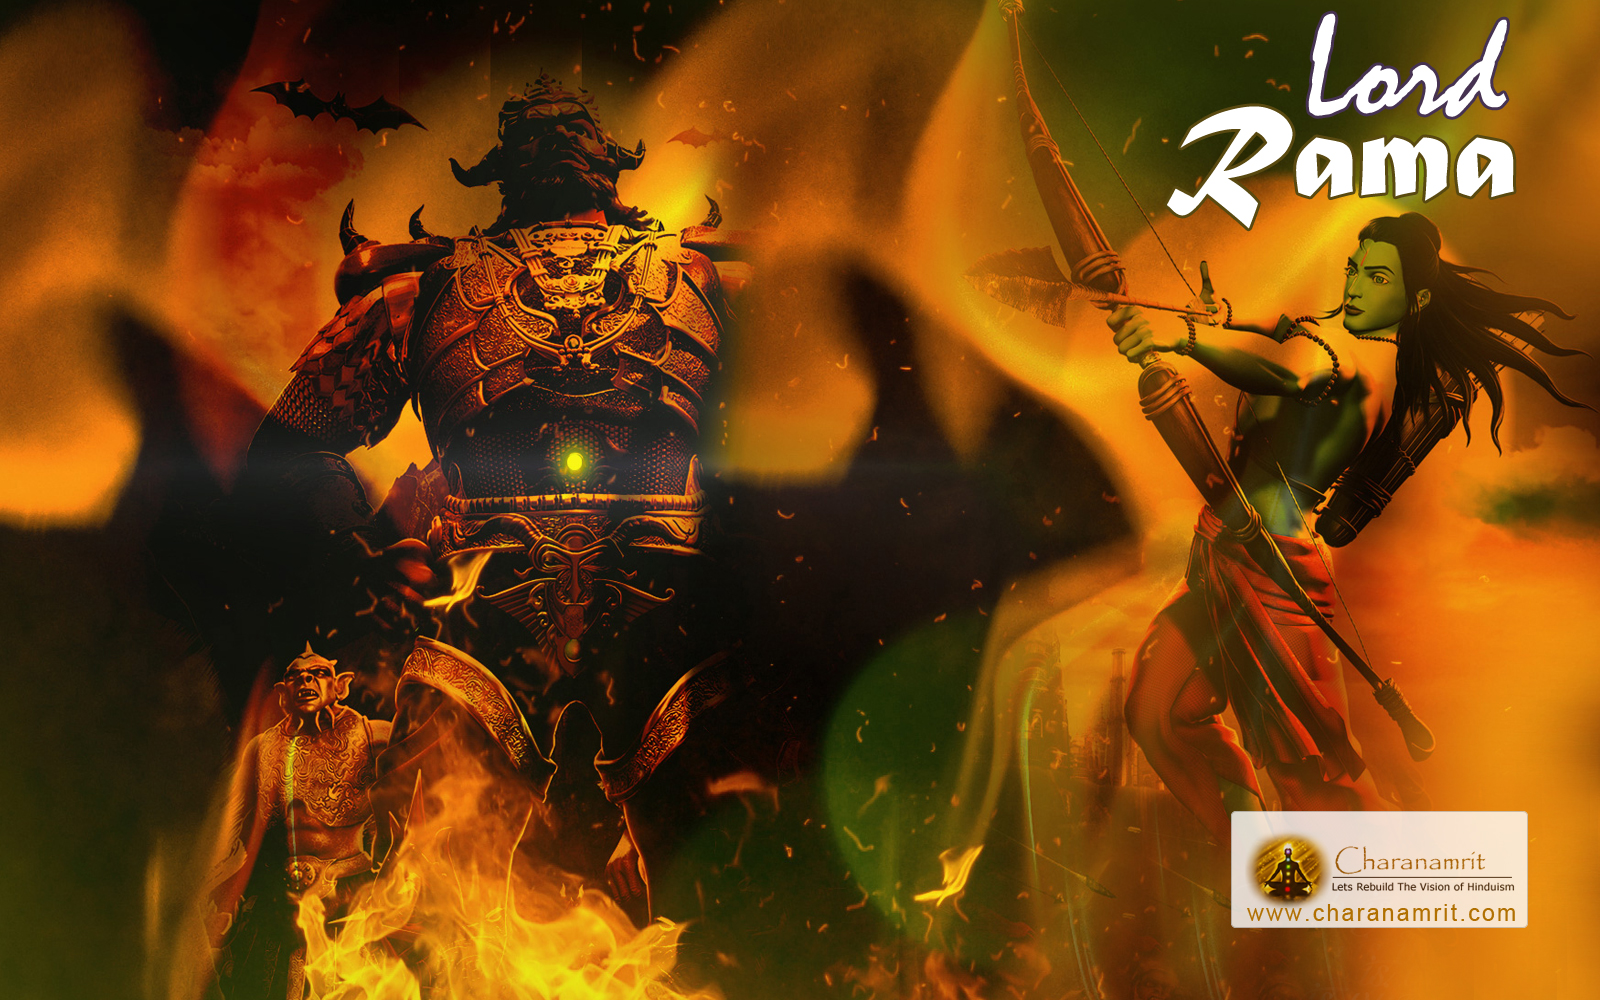 3D HD Wallpaper for download Lord Rama 3D HD wallpapers God 1600x1000